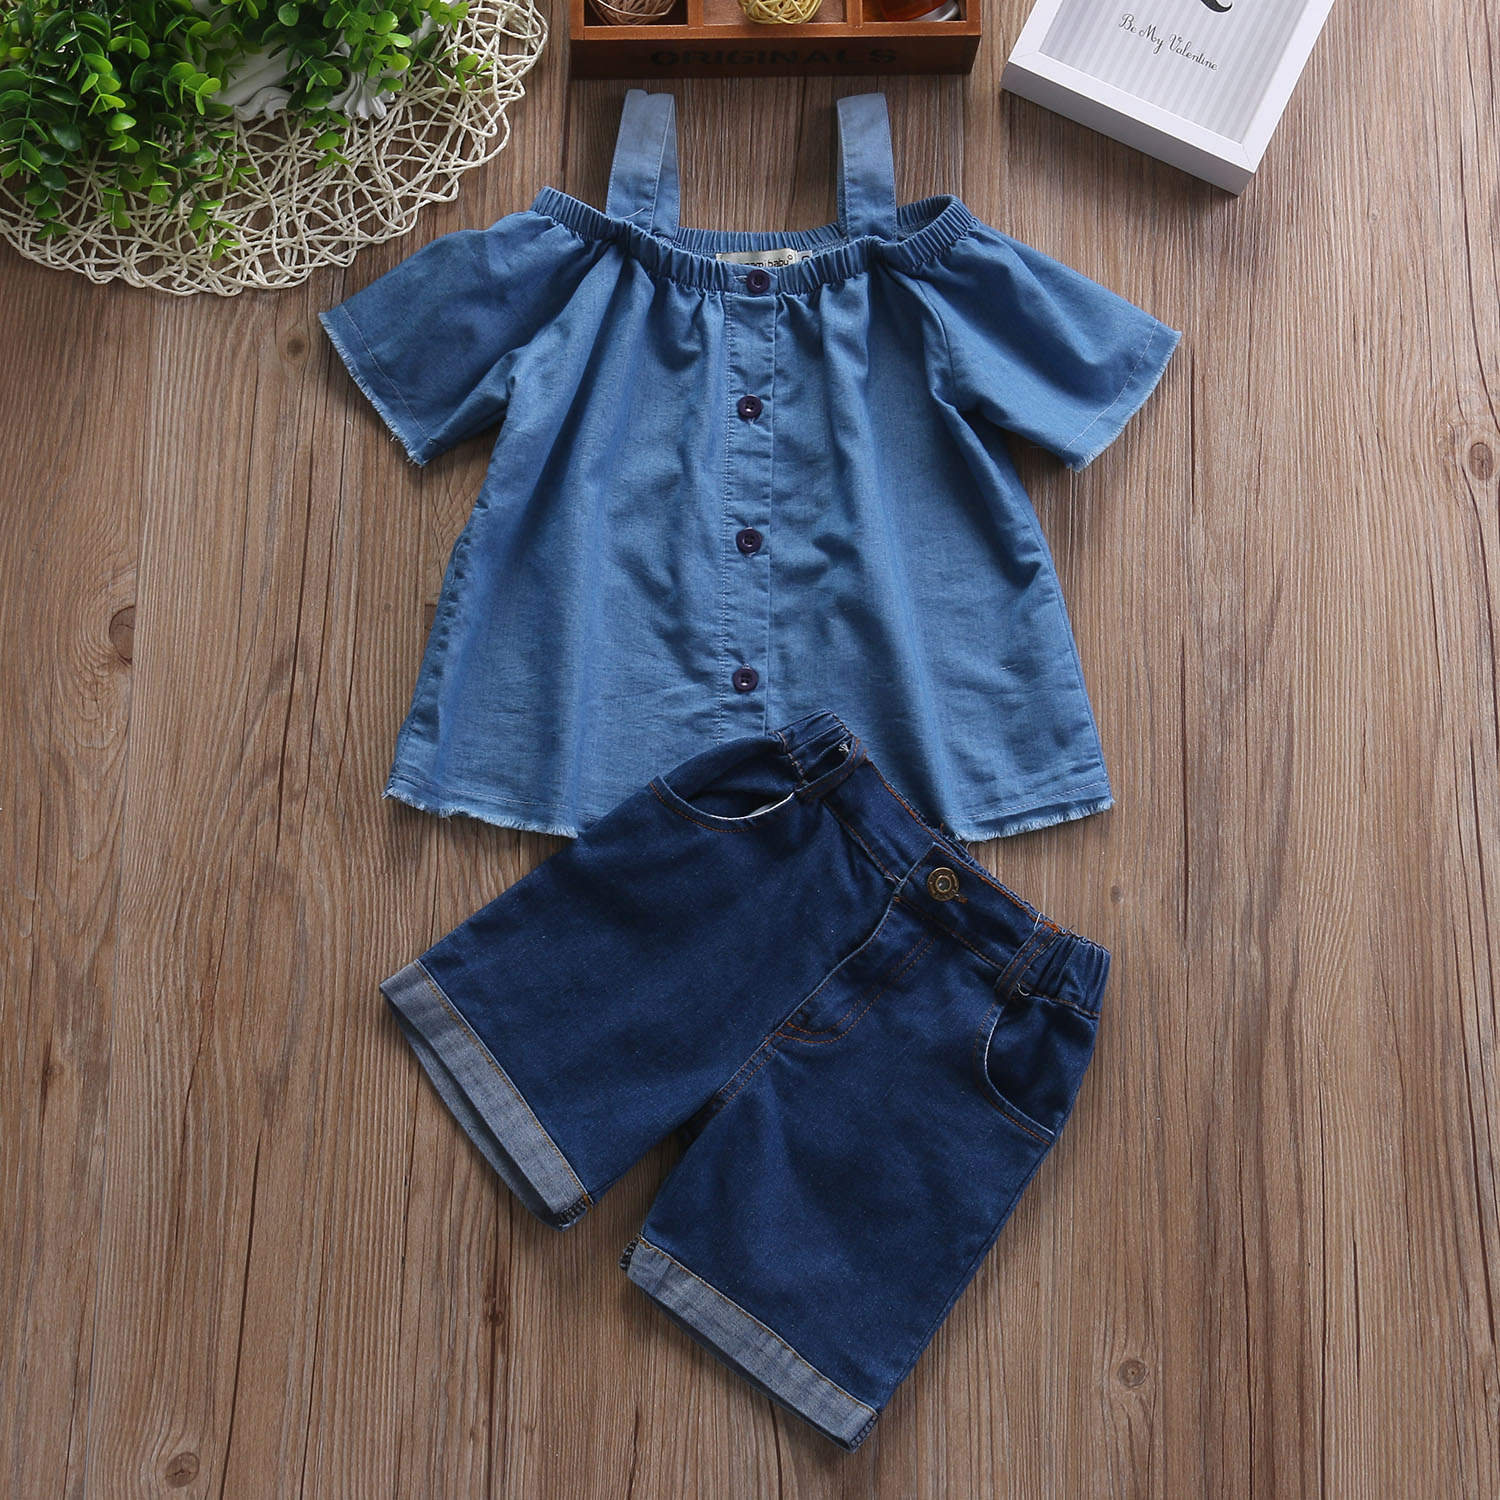 008760647bb Pudcoco Mother Daughter Clothes Sets Cold Shoulder Denim Tops and Denim  Shorts Mom Kids Match Summer Outfit-in Matching Family Outfits from Mother  & Kids on ...